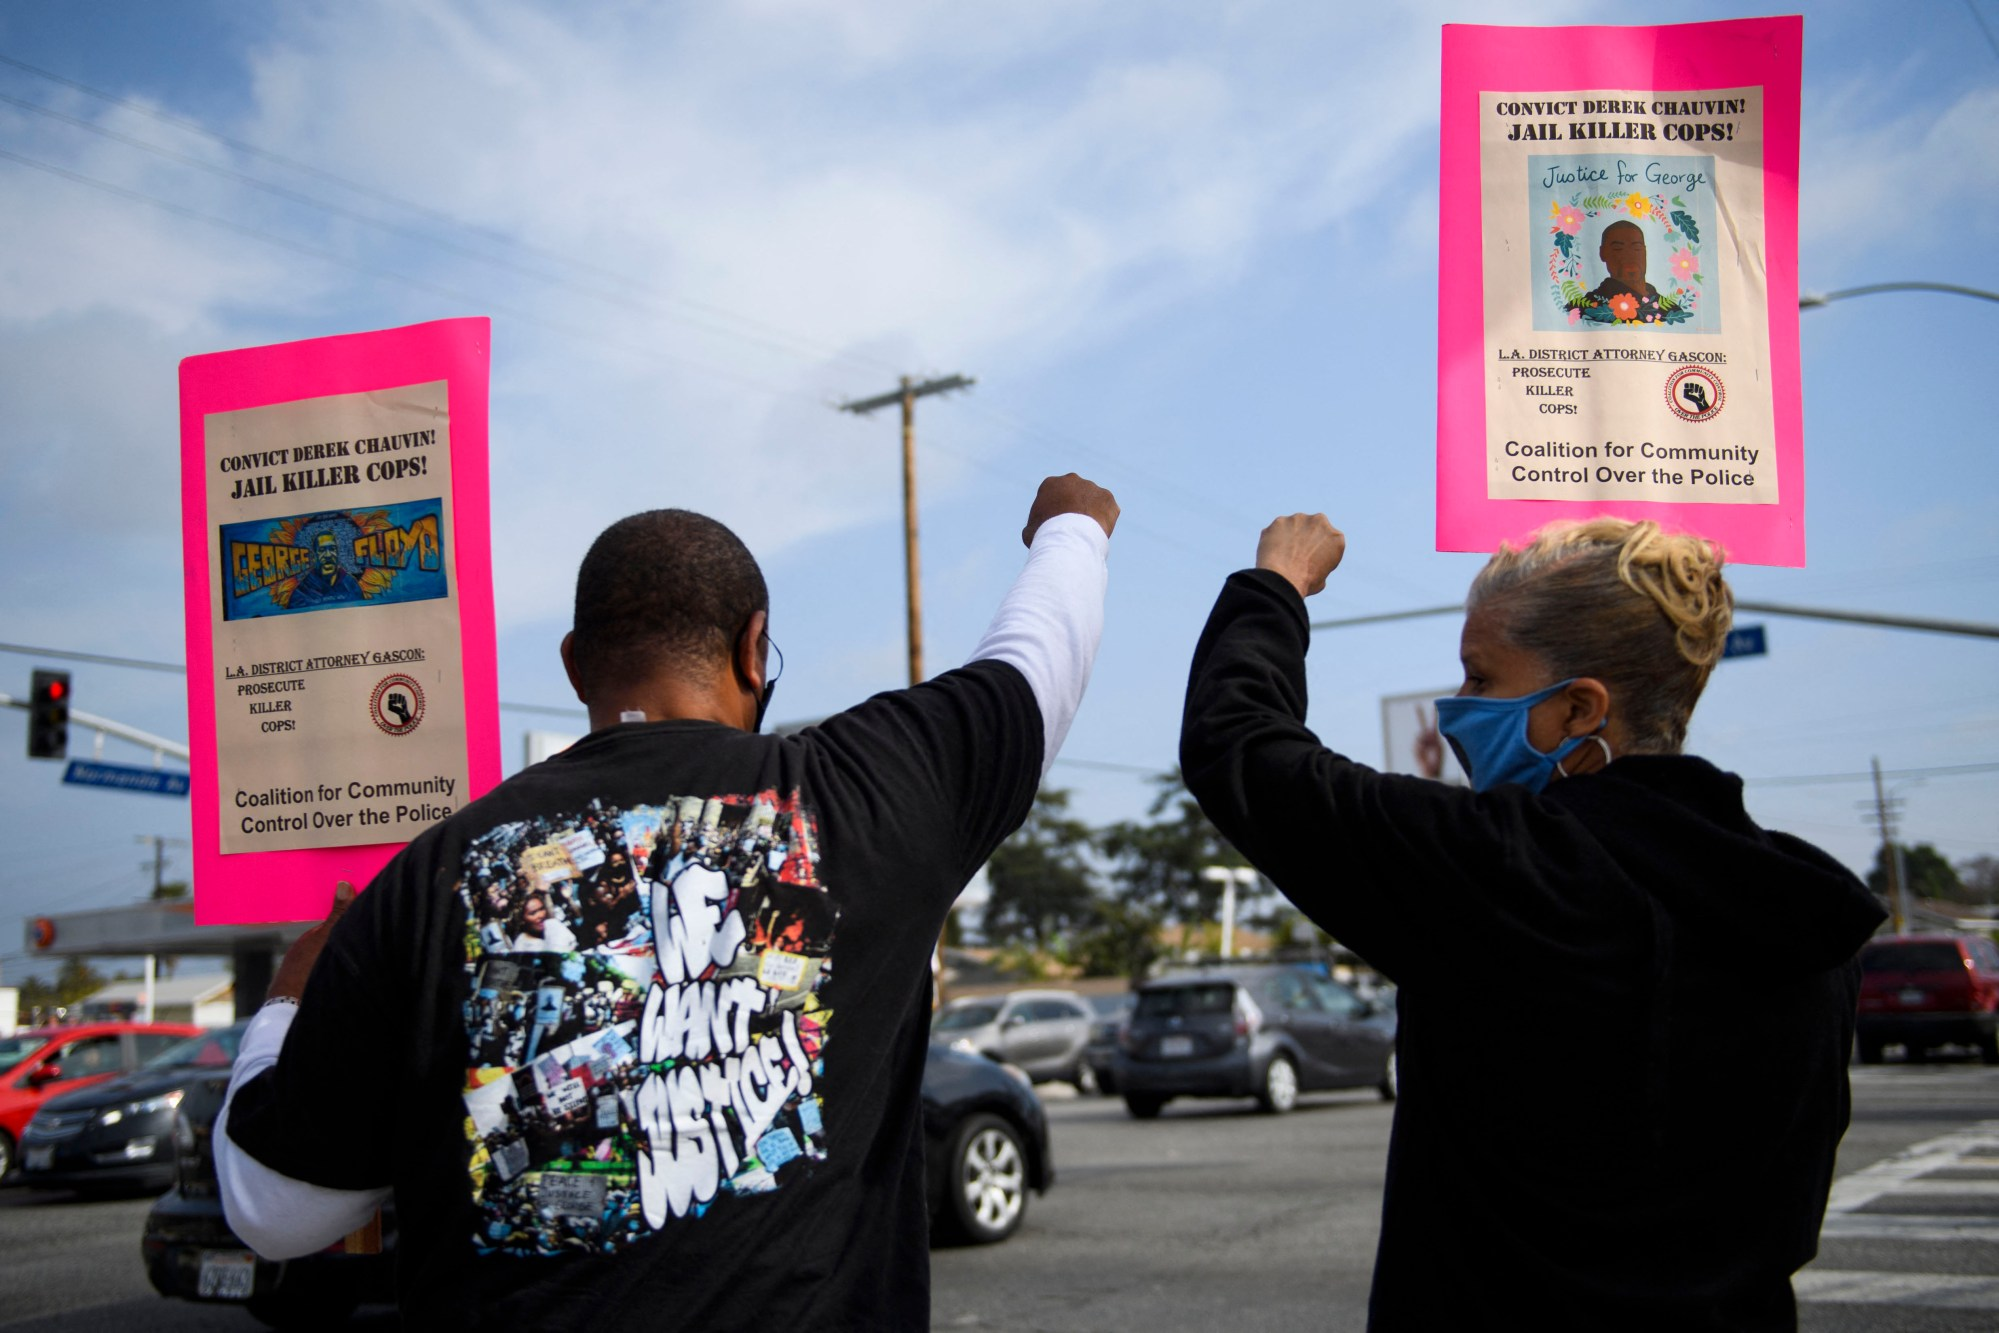 Activist Najee Ali, left, protests the killings of people by police including the death of George Floyd and Daunte Wright on April 12, 2021, at the intersection of Florence and Normandie in Los Angeles. (Patrick T. Fallon / AFP / Getty Images)